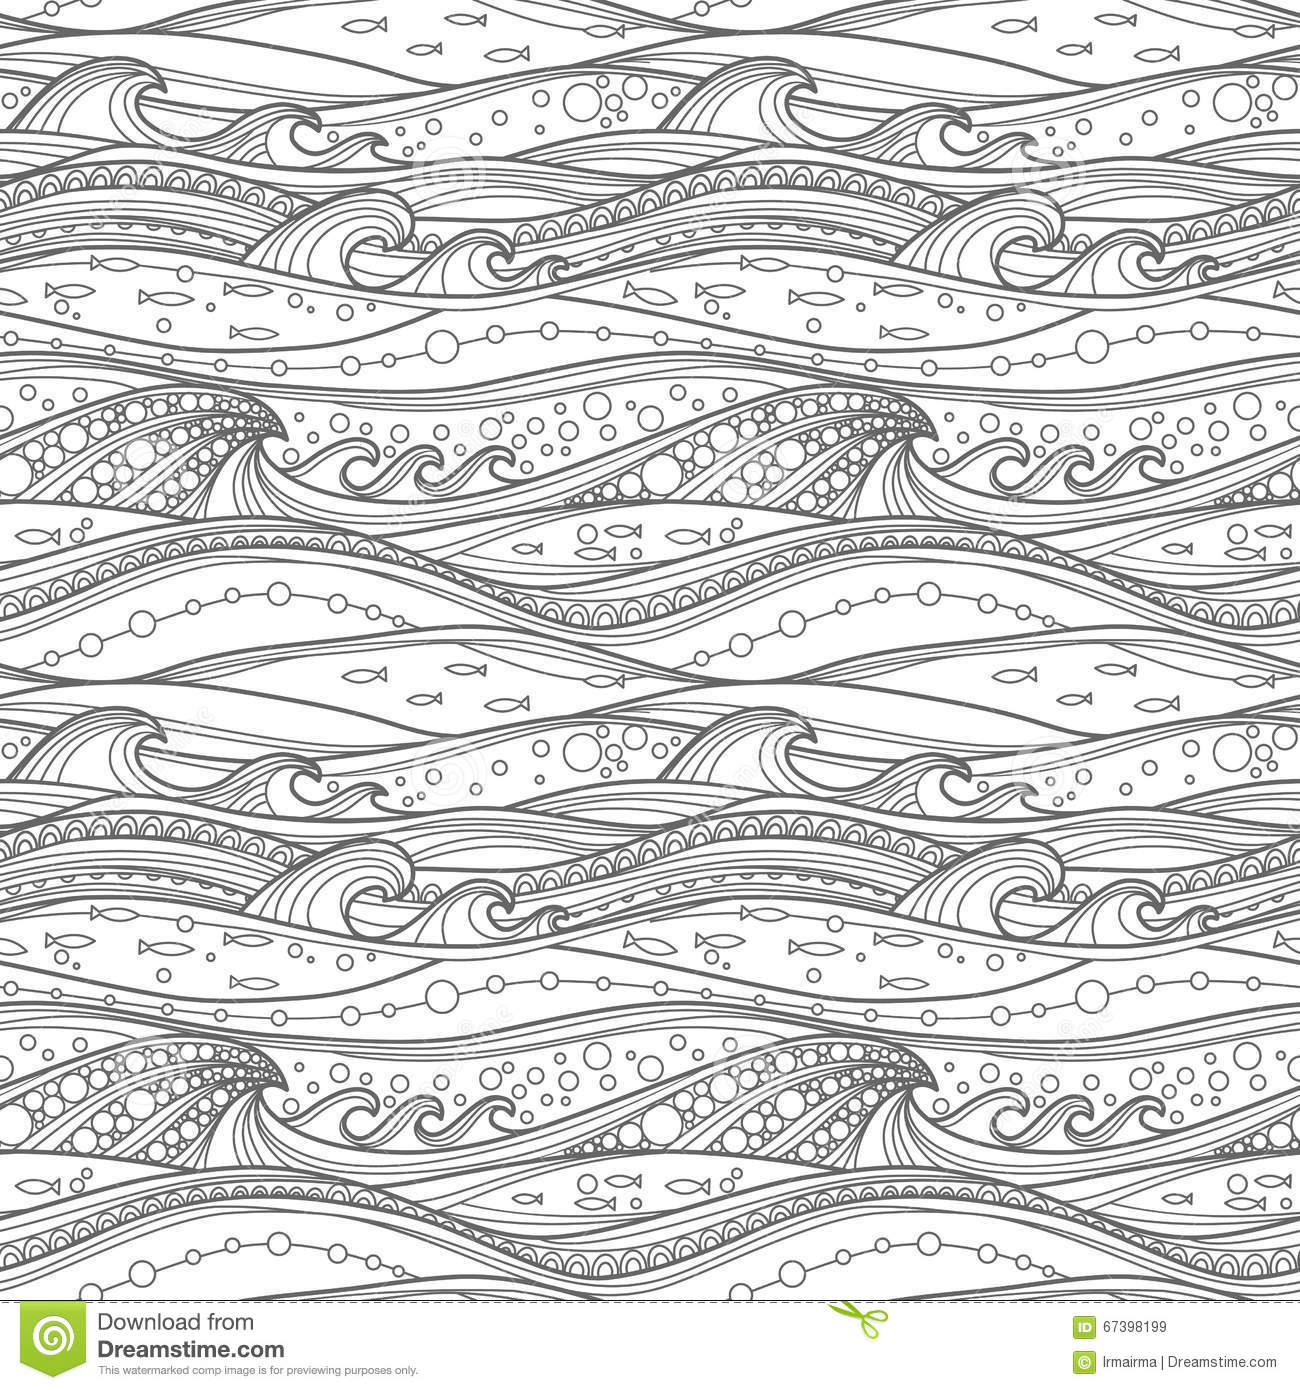 free ocean waves coloring pages - photo#22